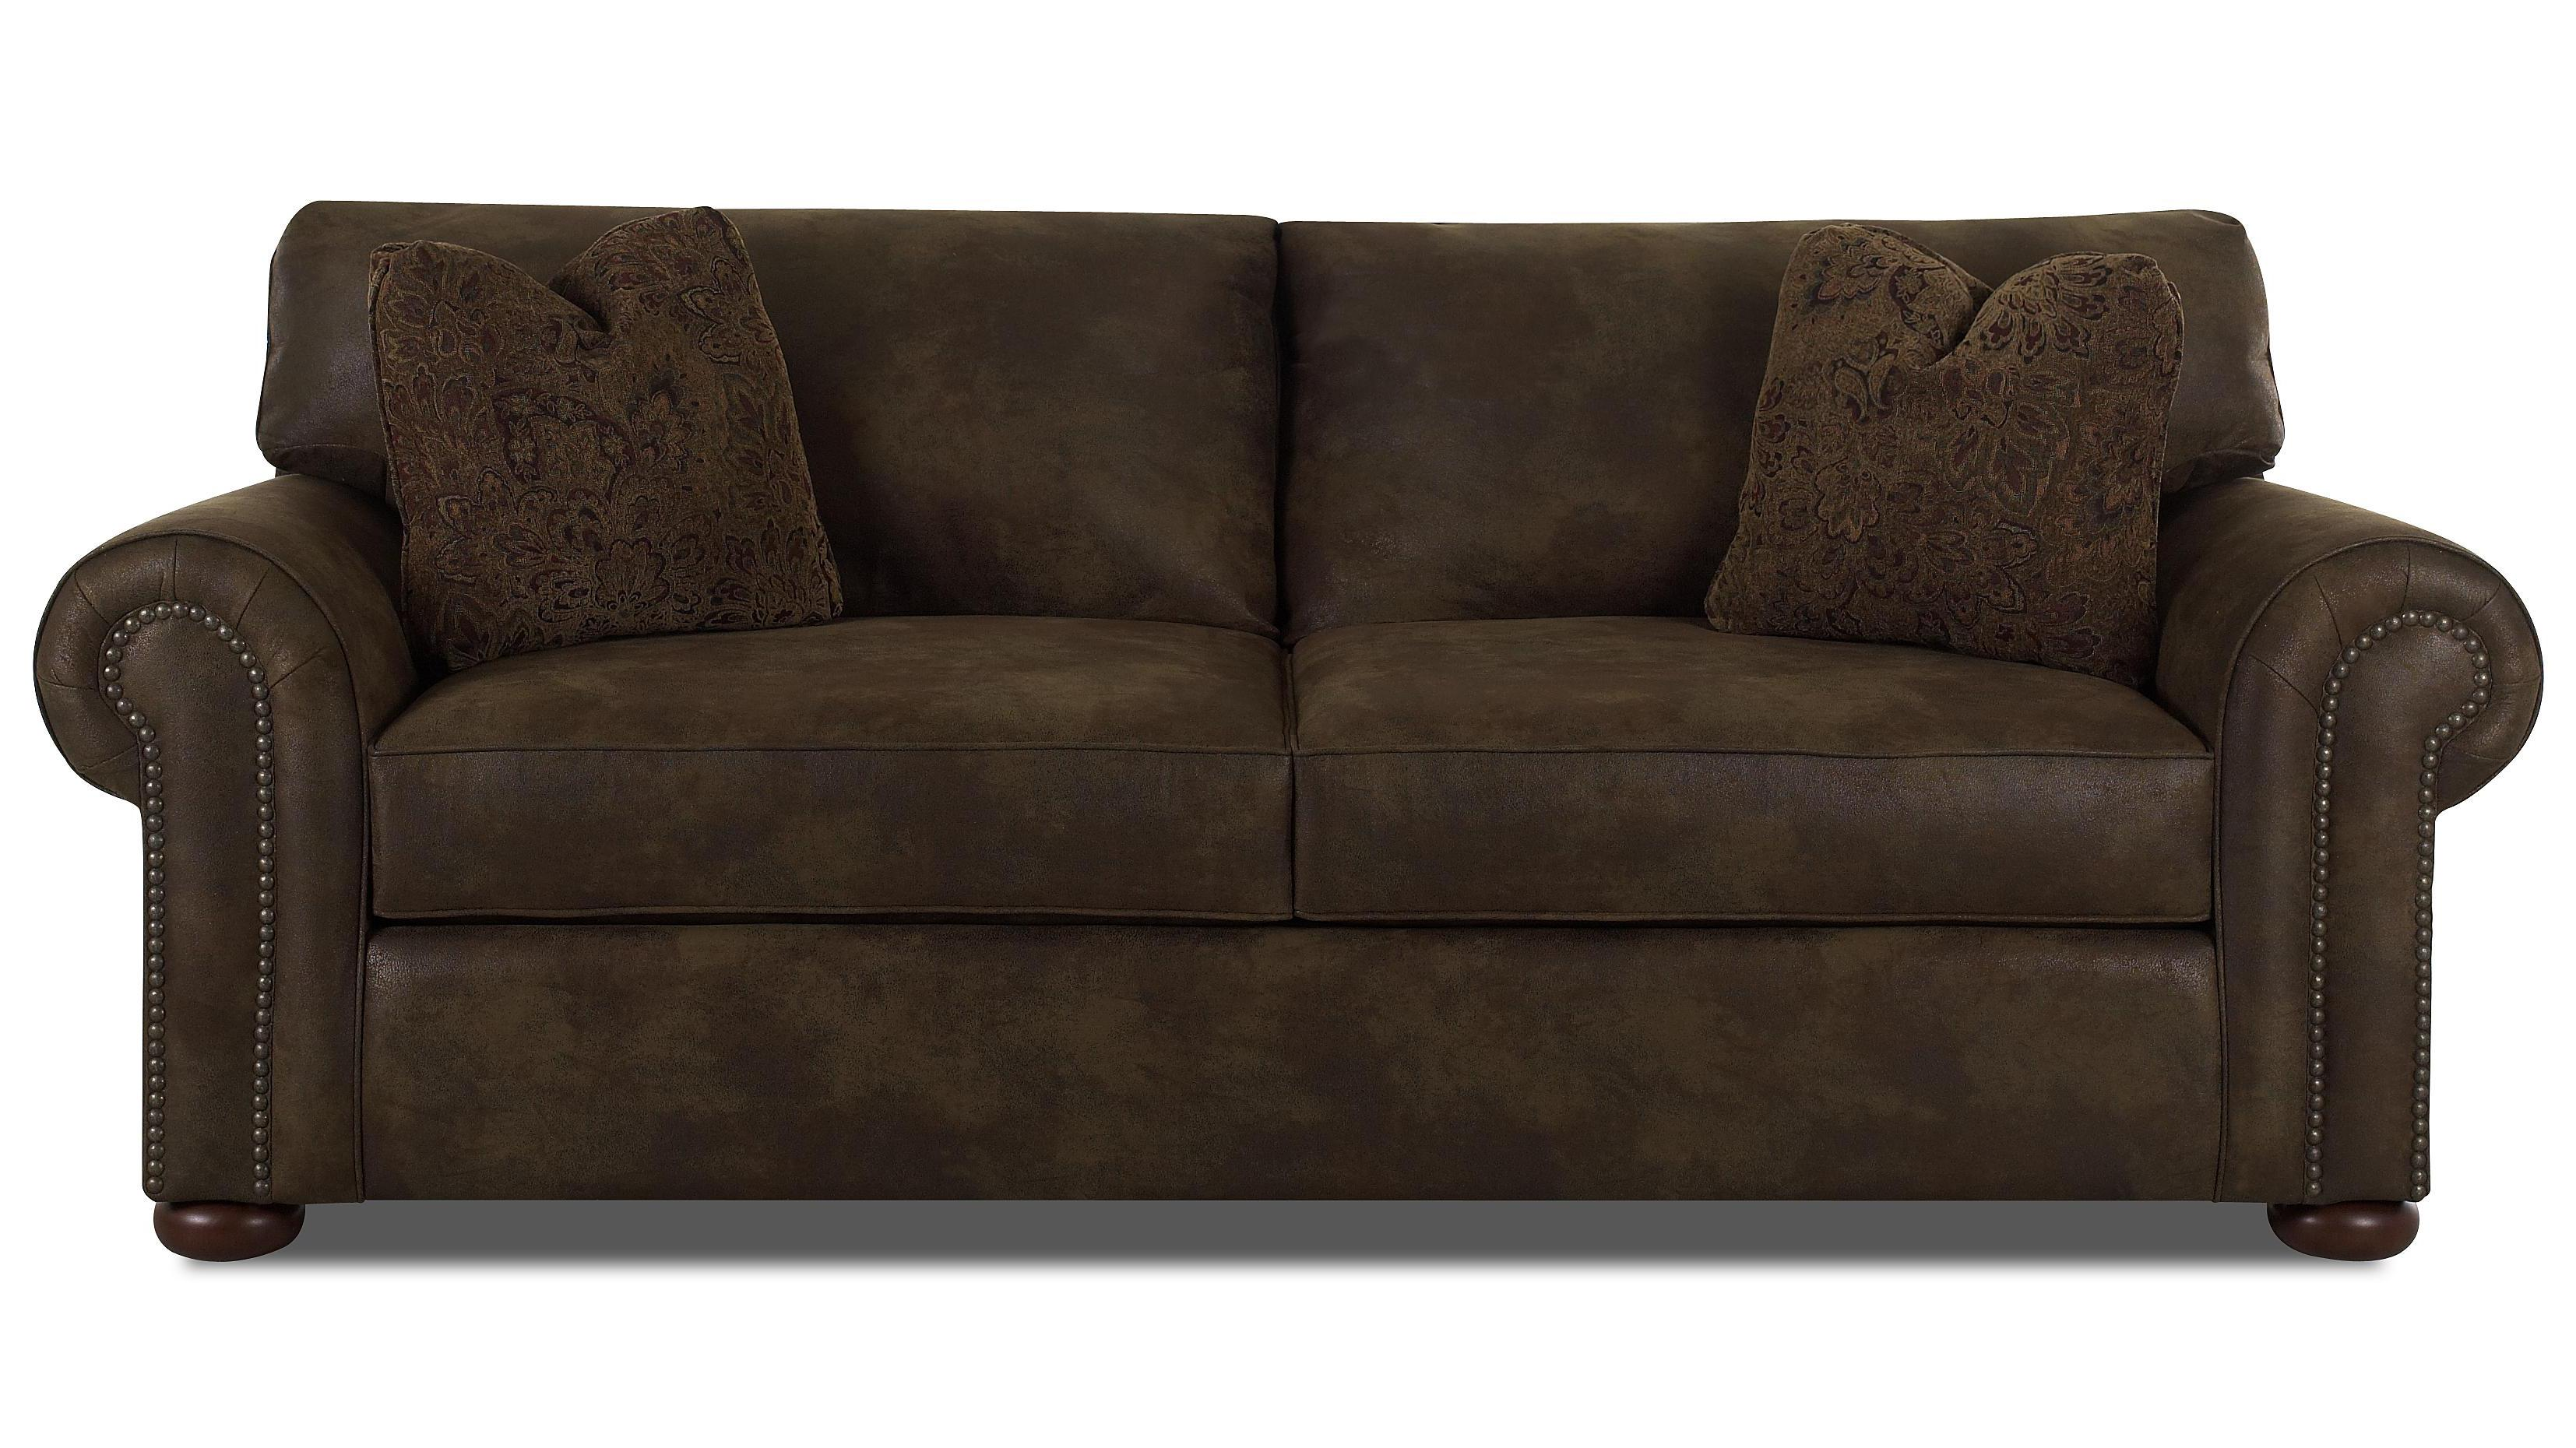 sienna sofa sleeper double futon bed dimensions klaussner heights furniture